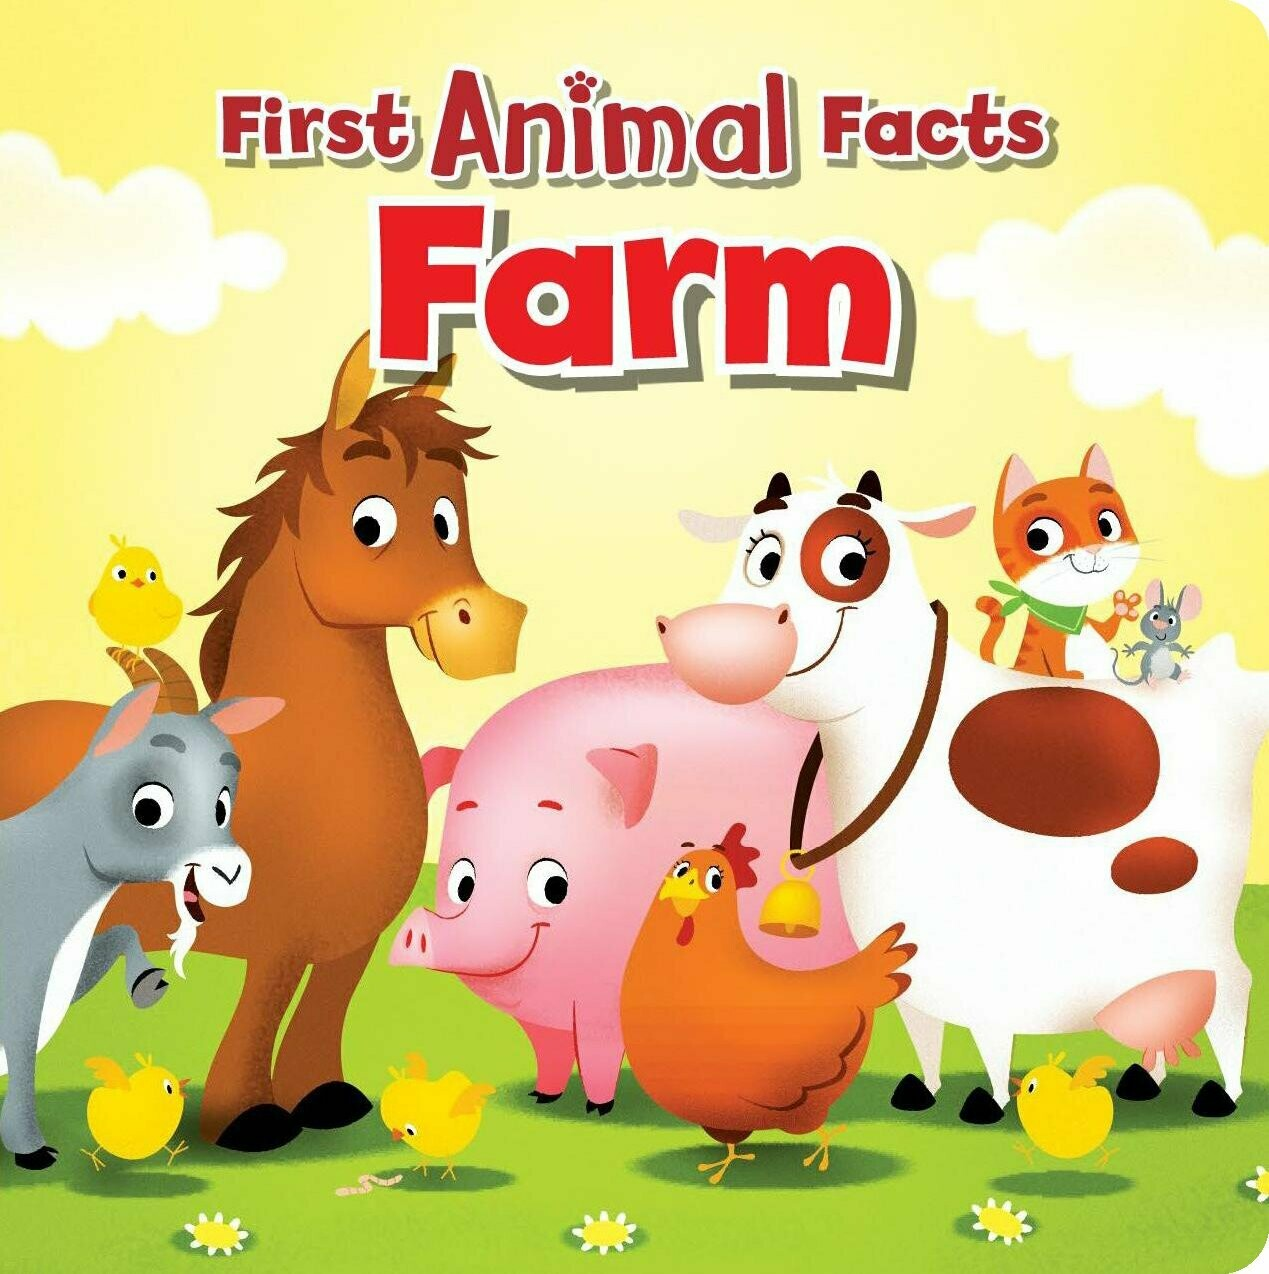 First Animal Facts: Farm